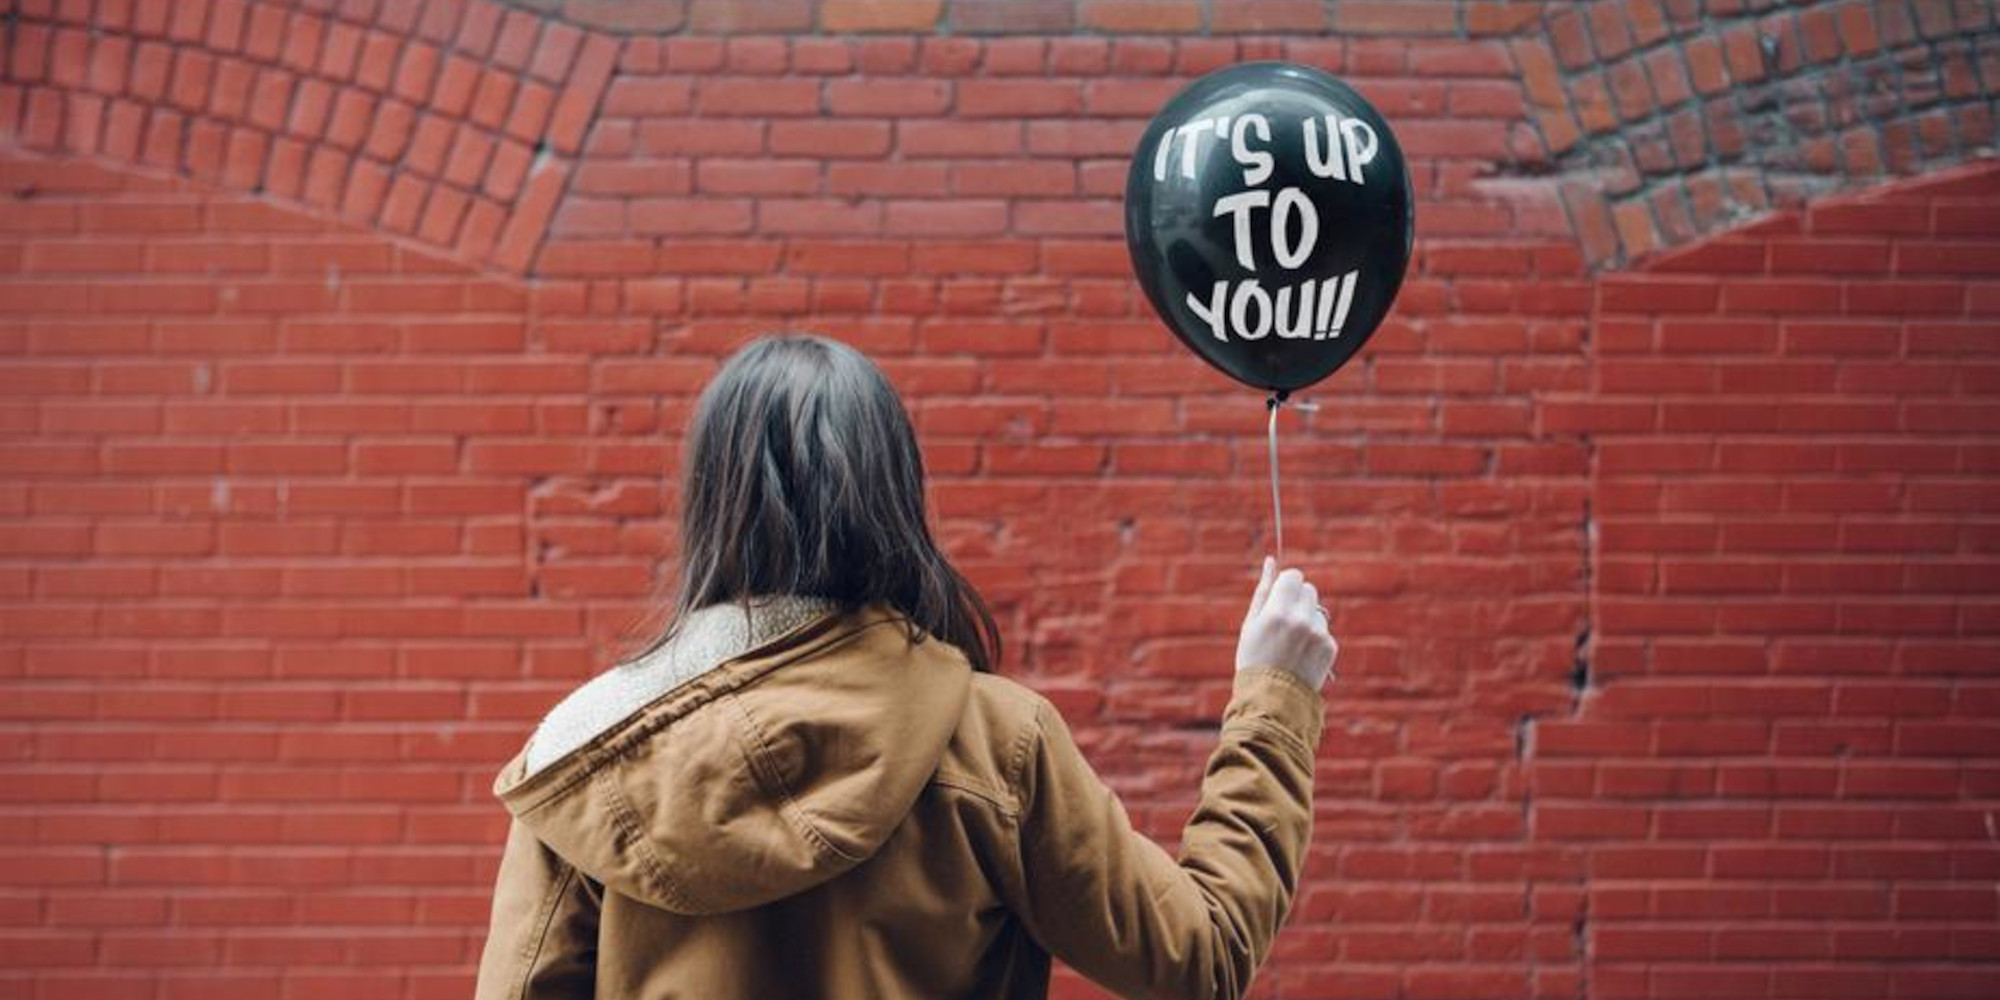 ed_up-to-you-balloon